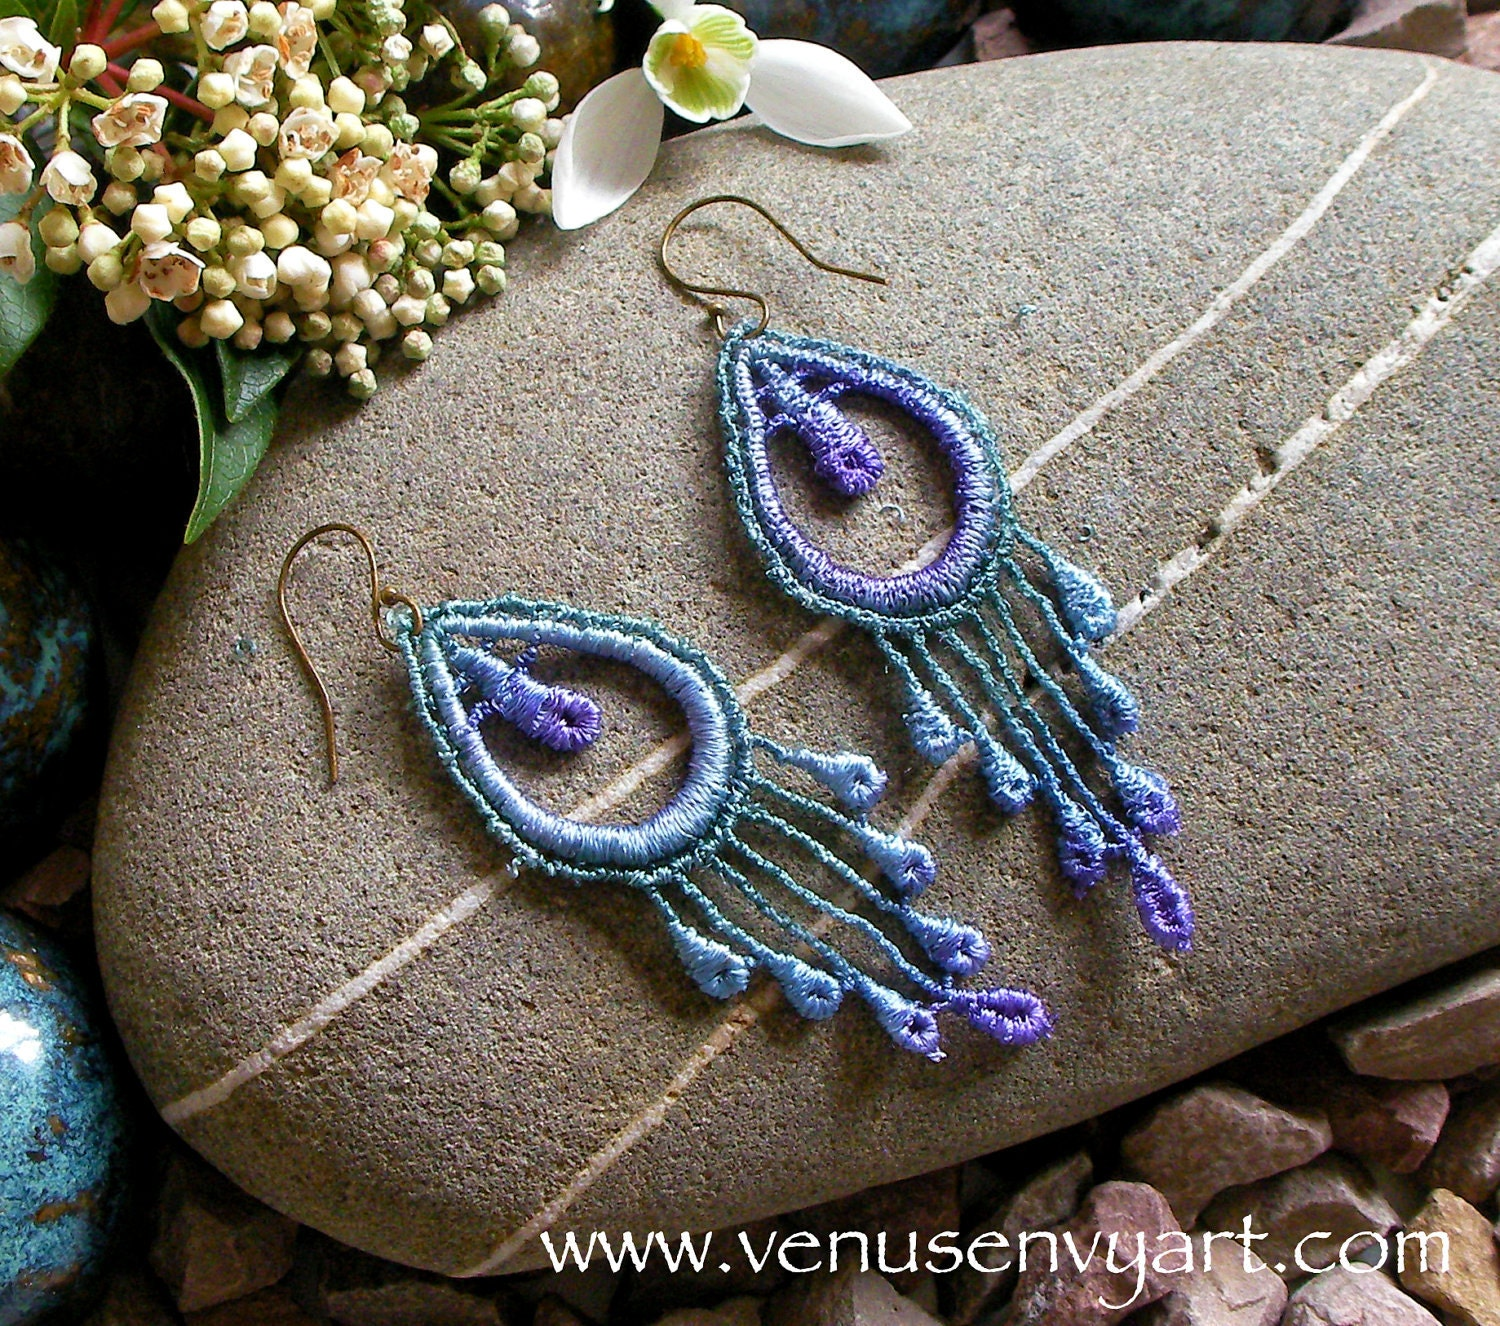 Lace Applique Earrings: 'Peacock Feathers' in Blue-Green-Purple Shades - venusenvyart